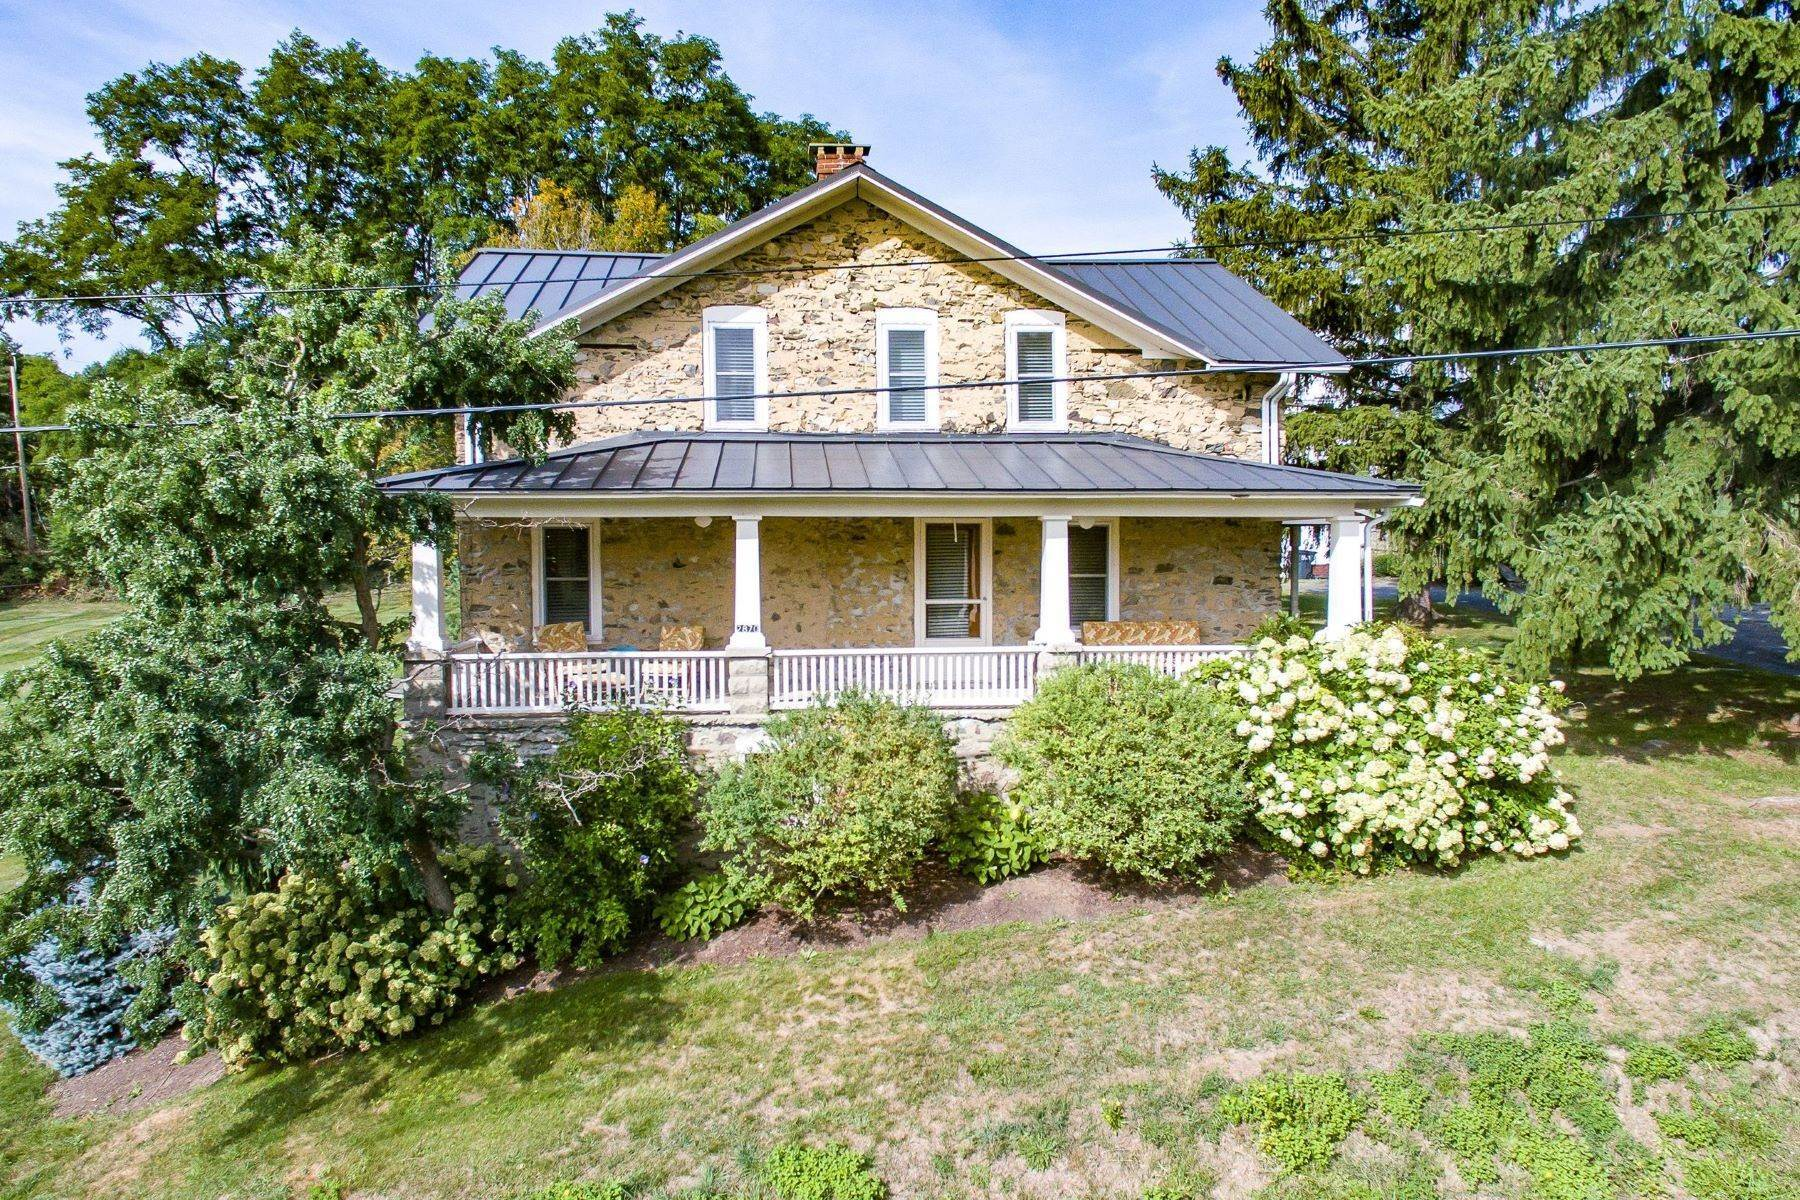 Single Family Homes for Sale at Stonehouse 1870 LLC 2870 Coates Road Jerusalem, New York 14527 United States